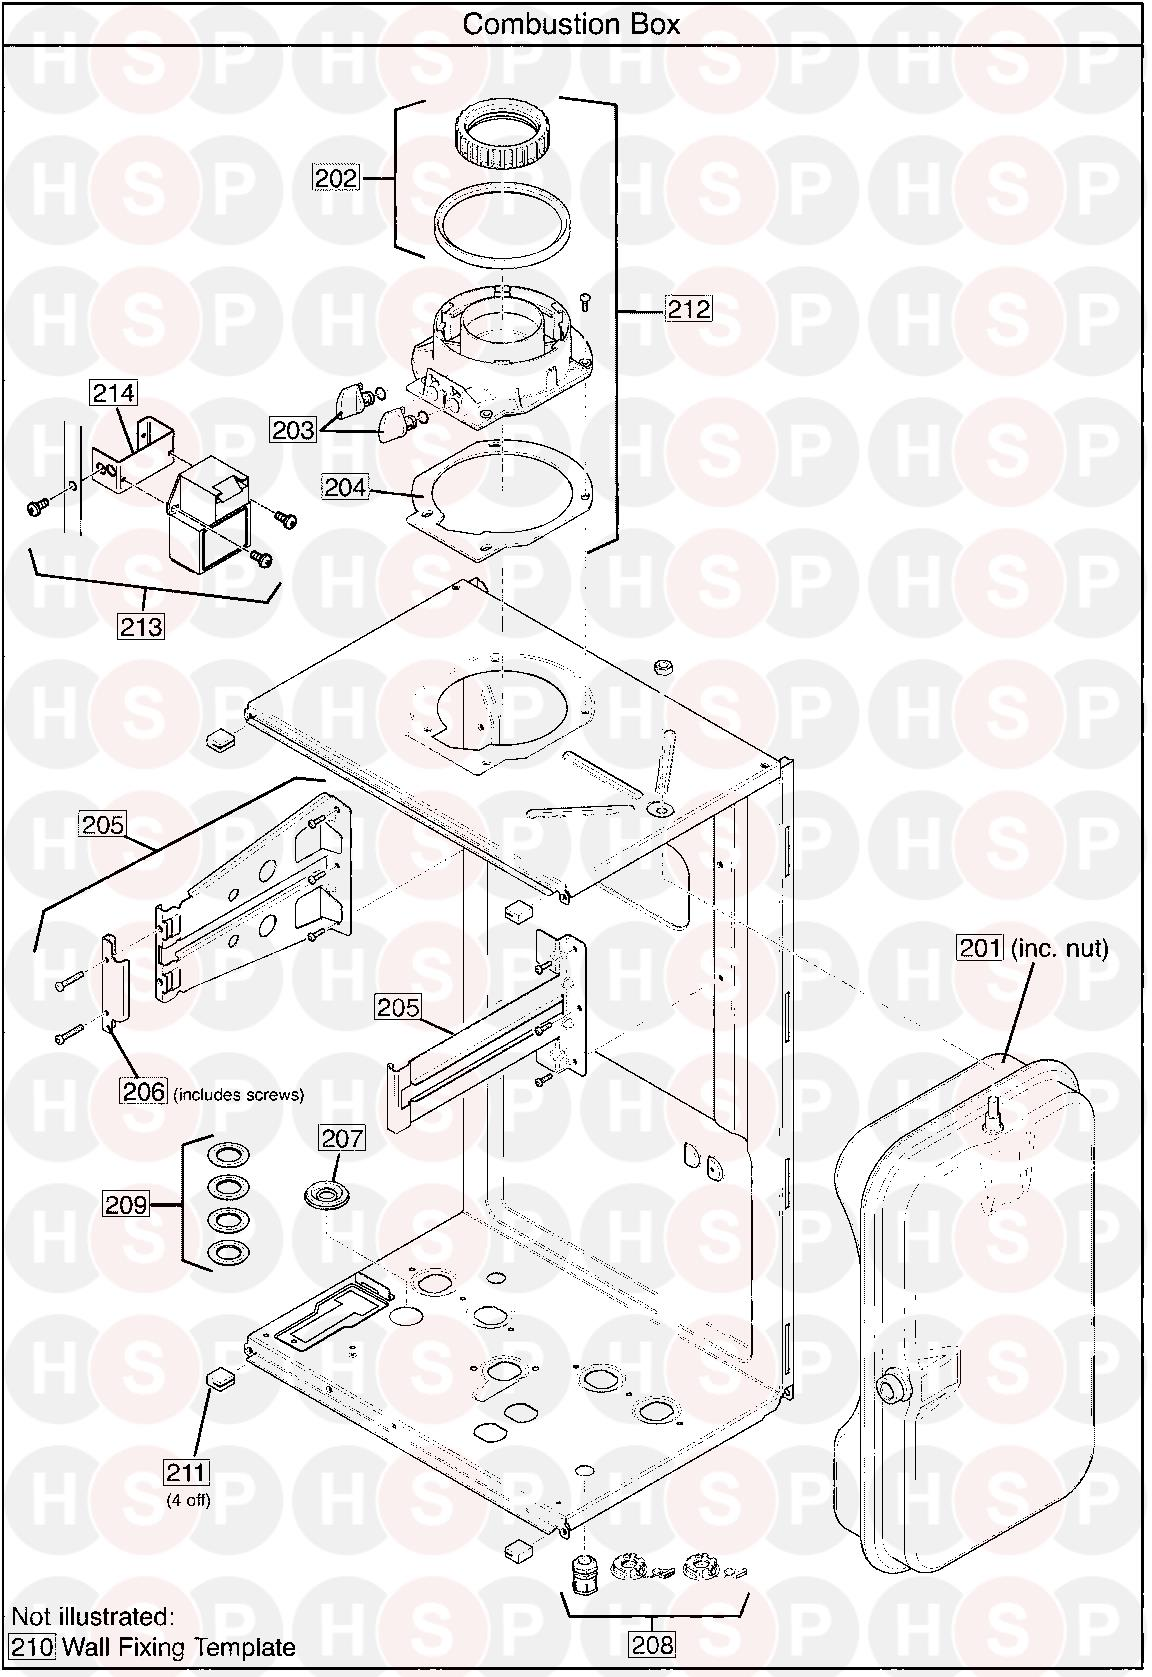 Baxi Plus Combi 33  Combustion Box  Diagram